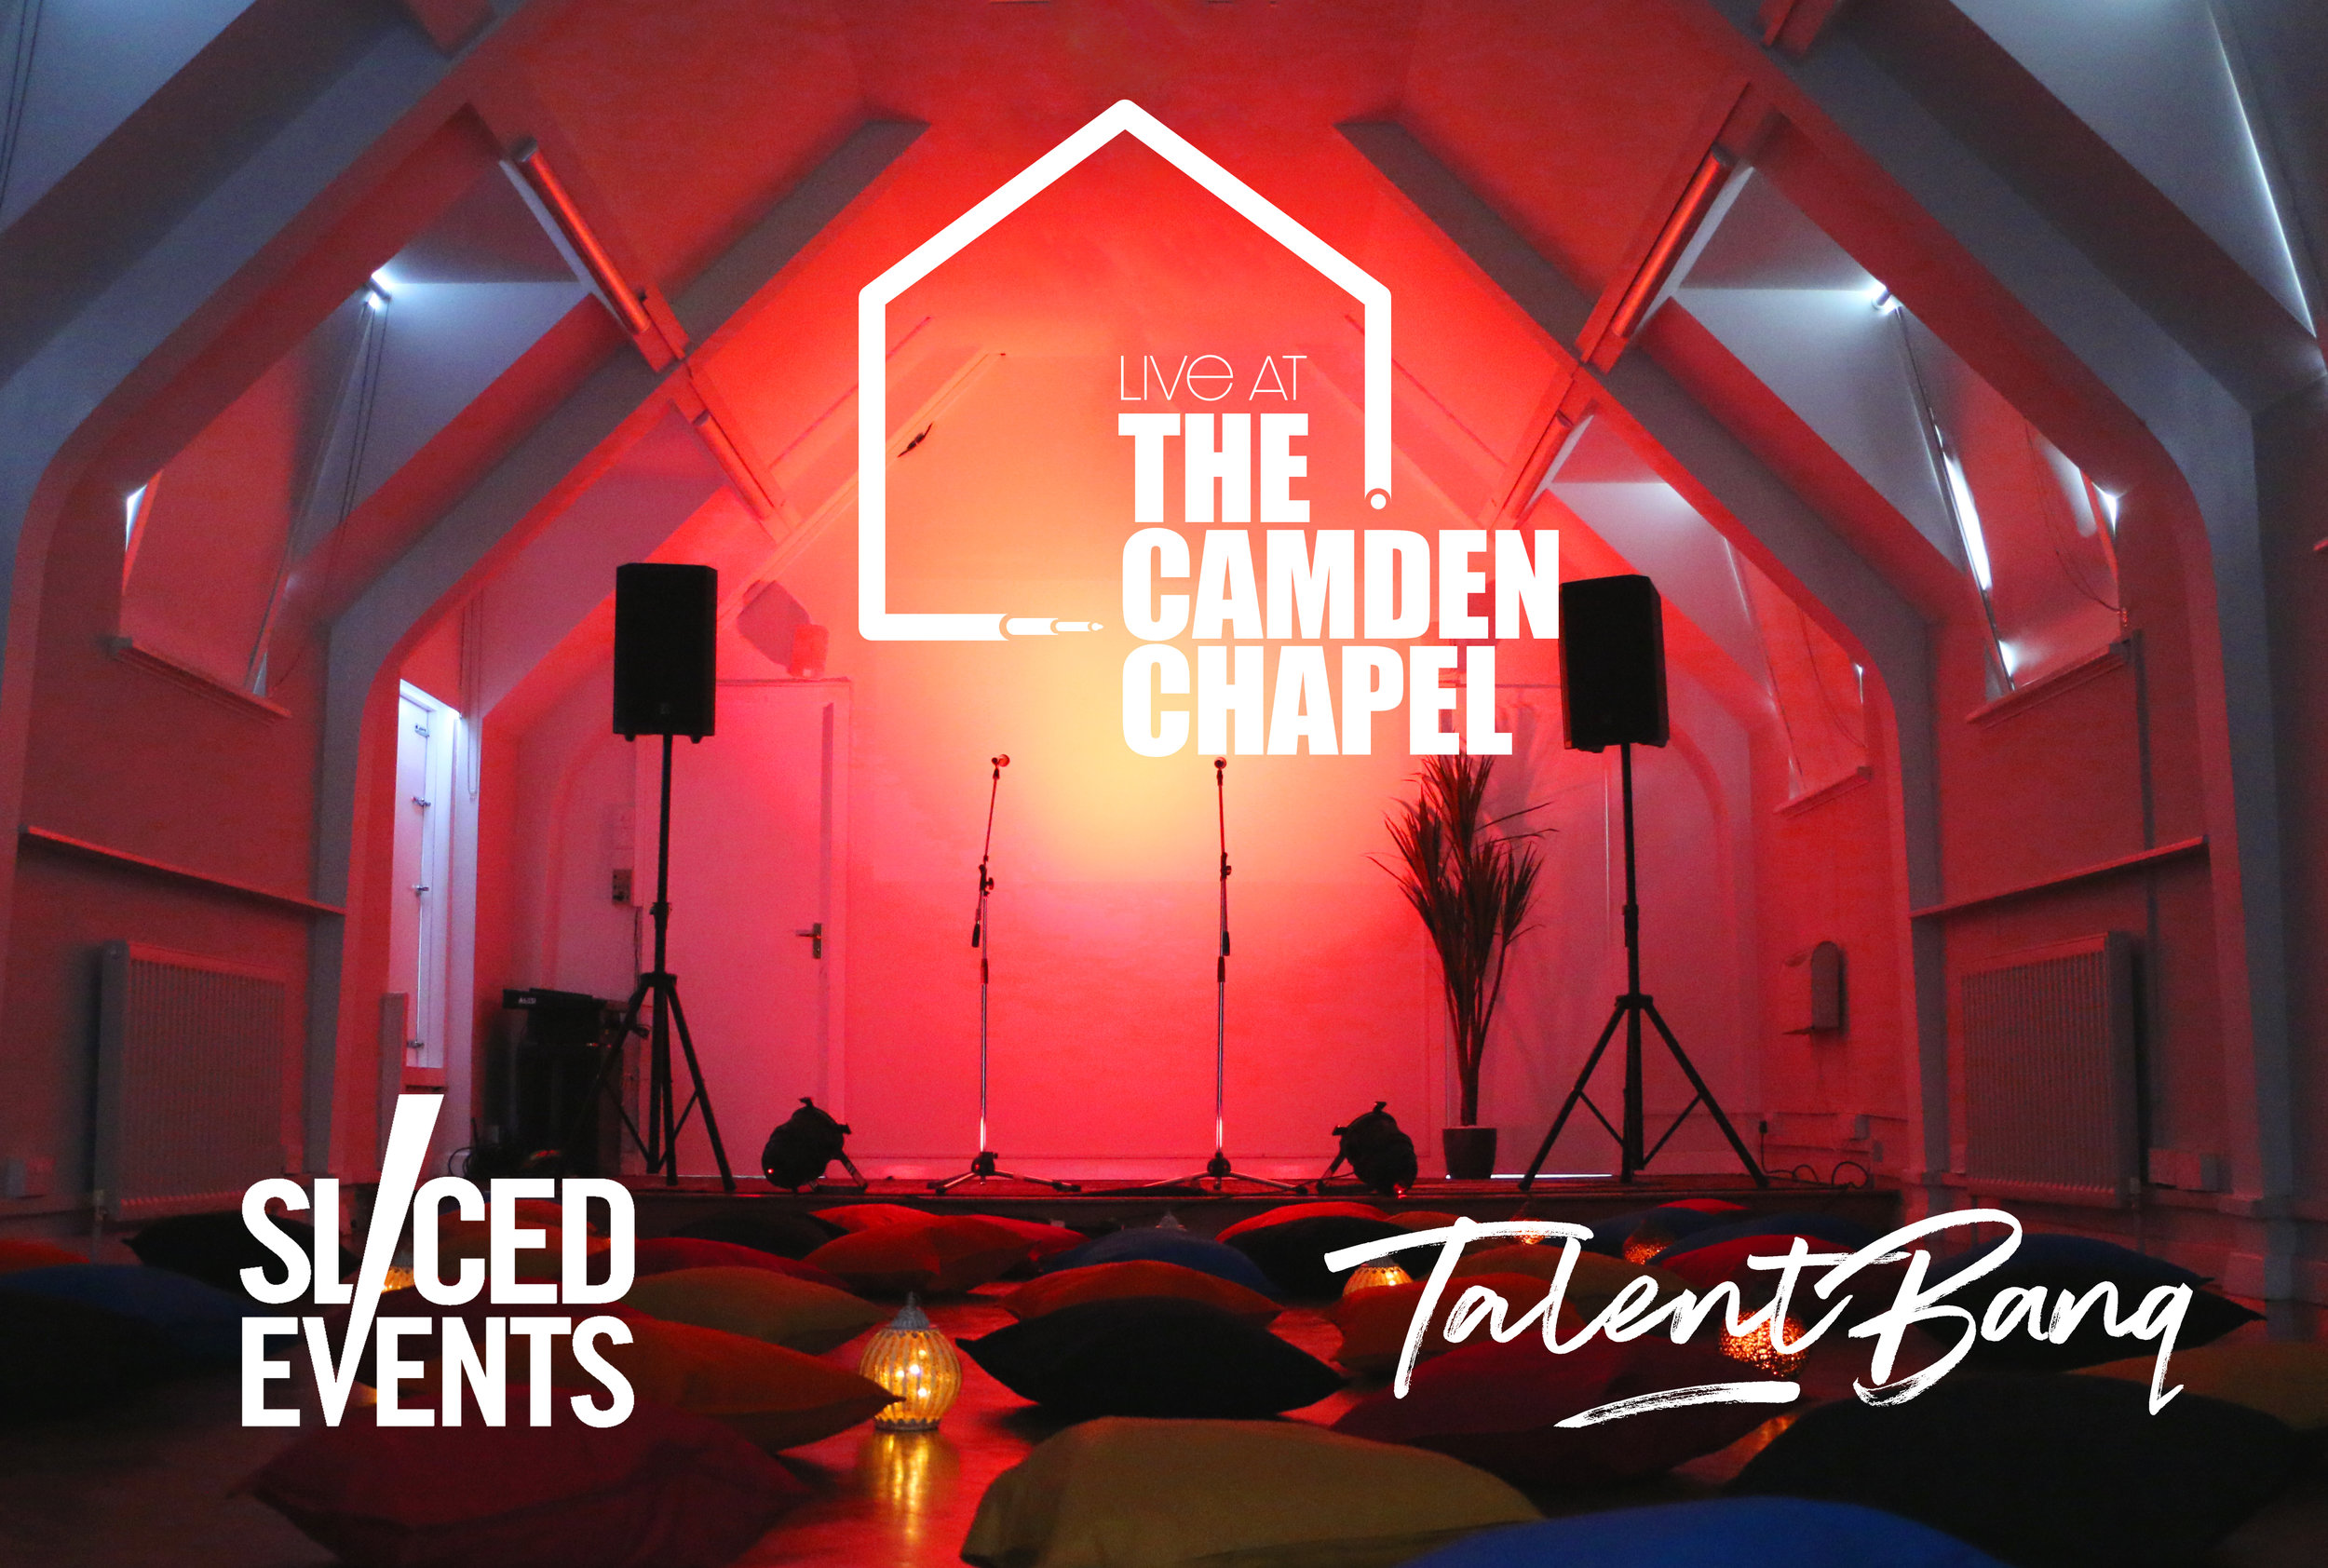 'live at the camden chapel' - talentbanq's new live music venue in north london